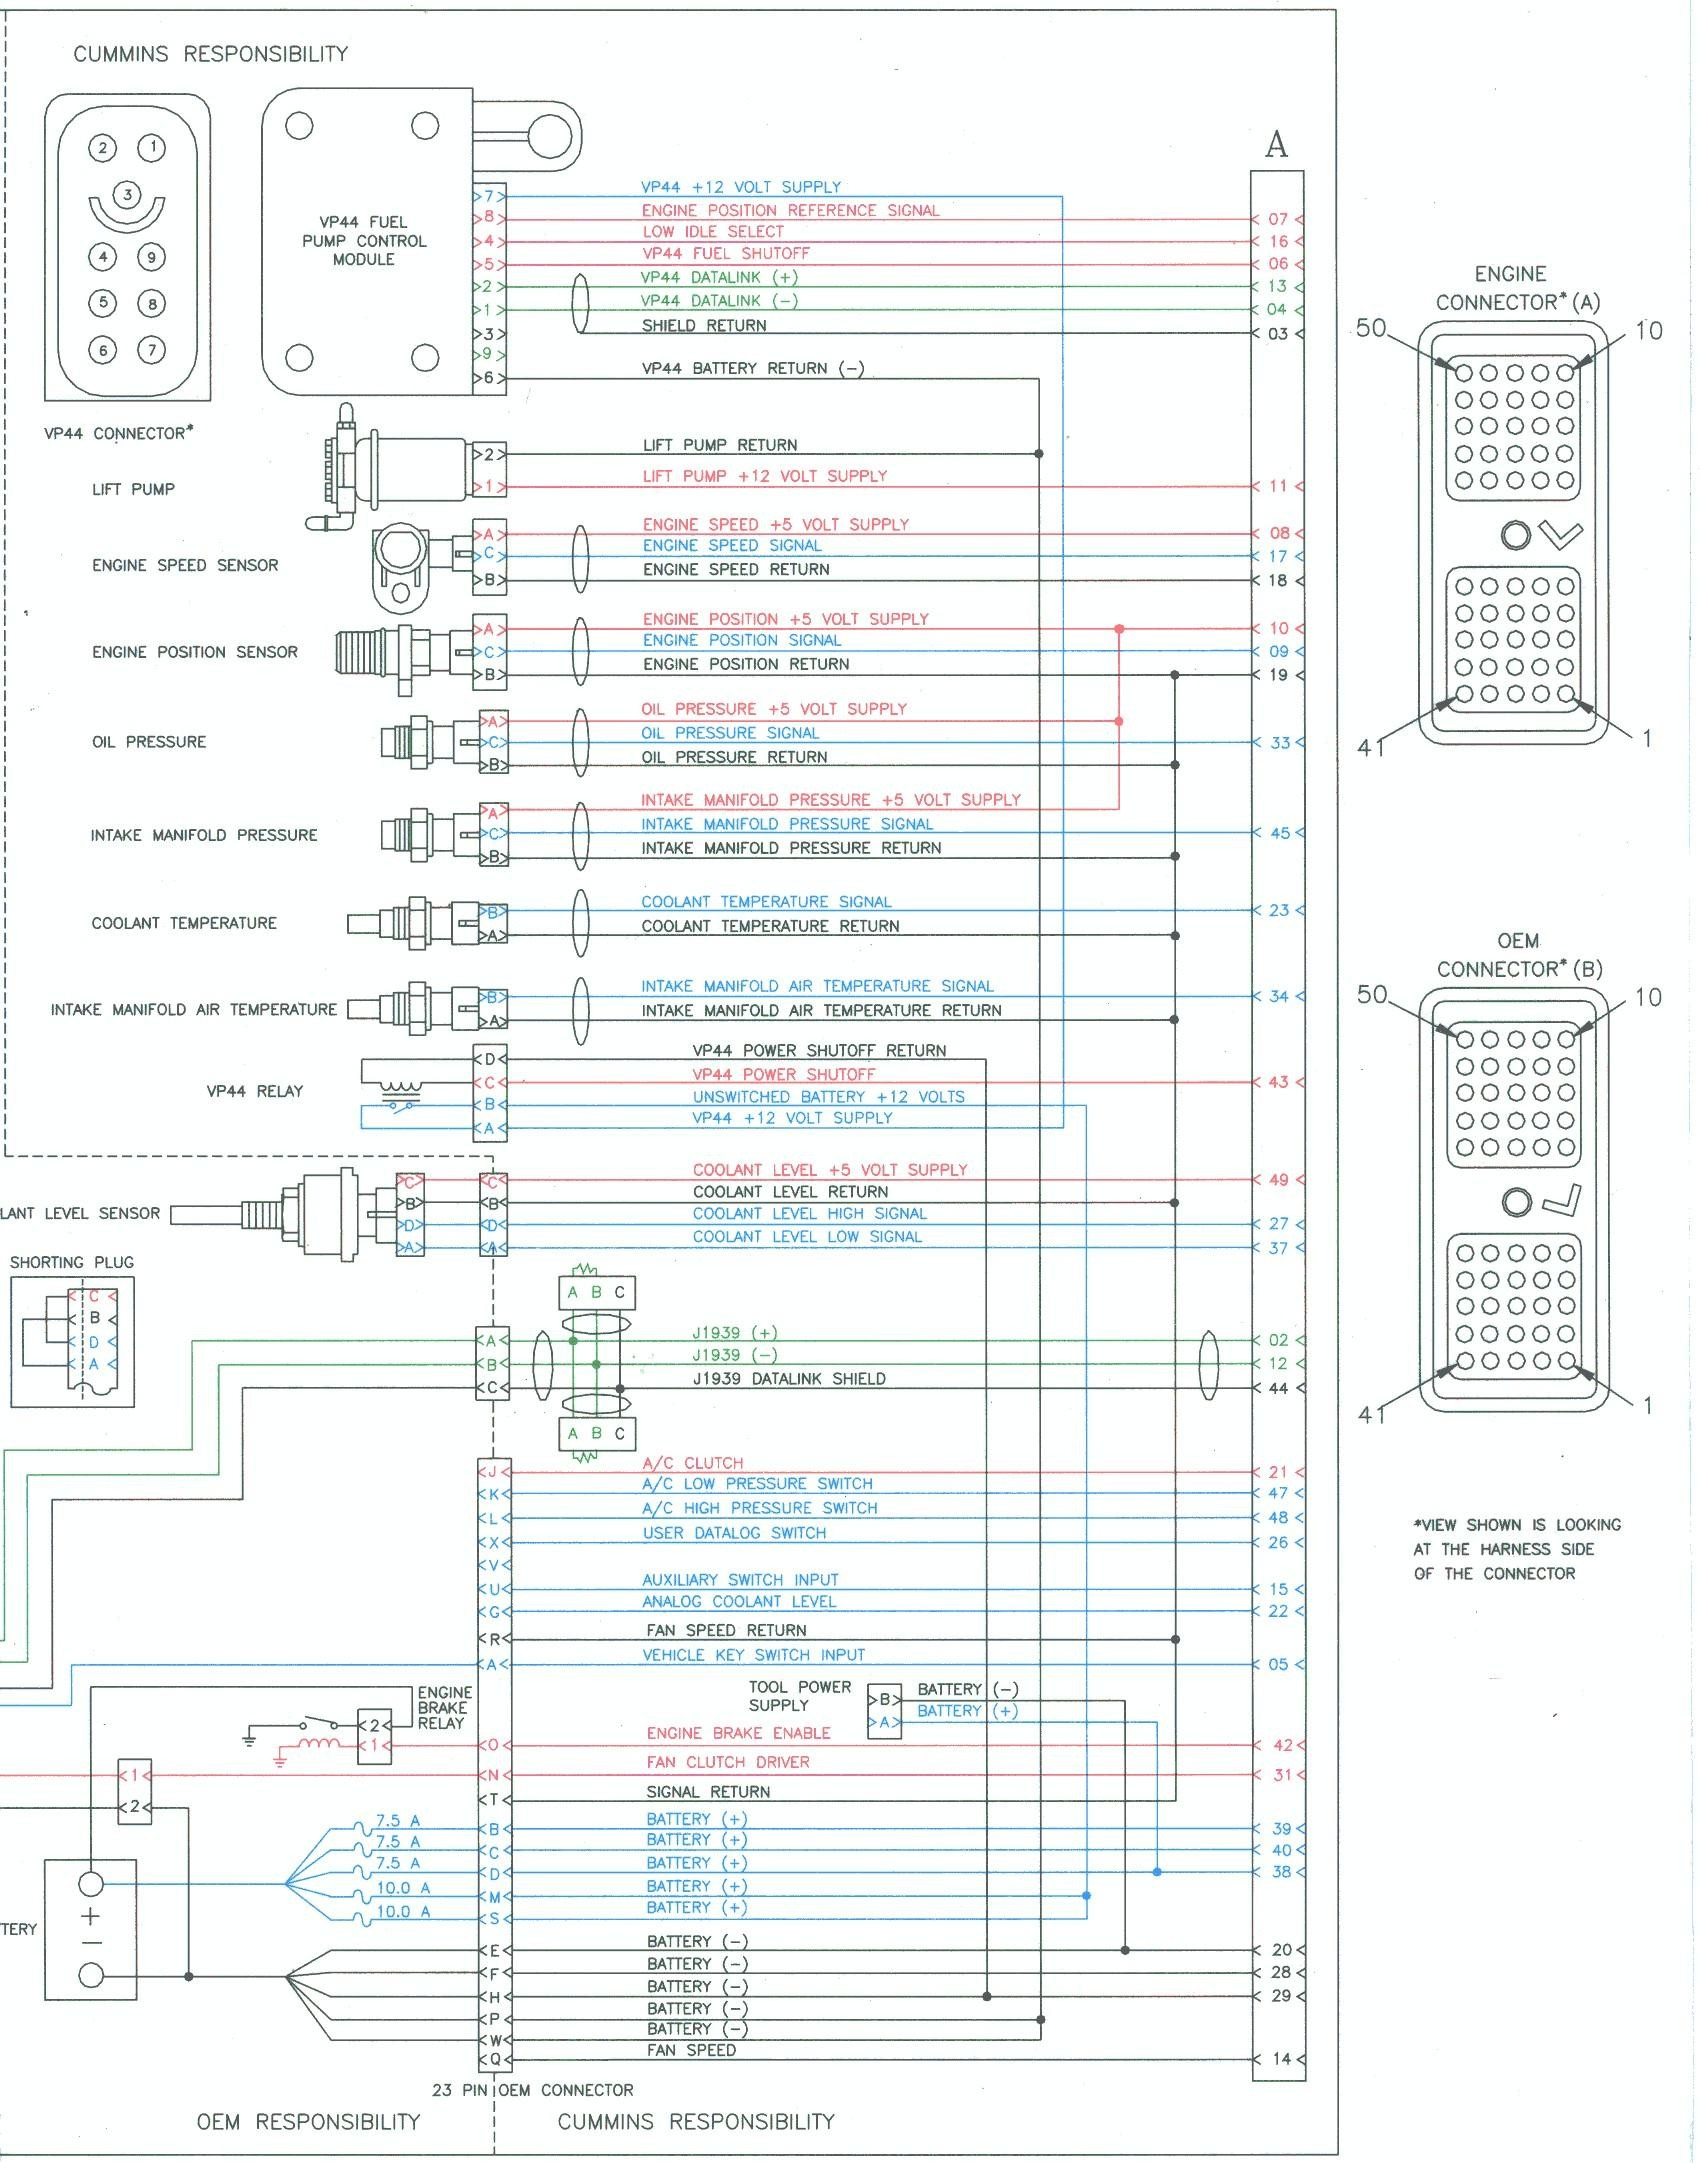 Spotlight Wiring Diagram 100 Series Landcruiser Diagrams Schema Wire For Spotlights Library Light Relay